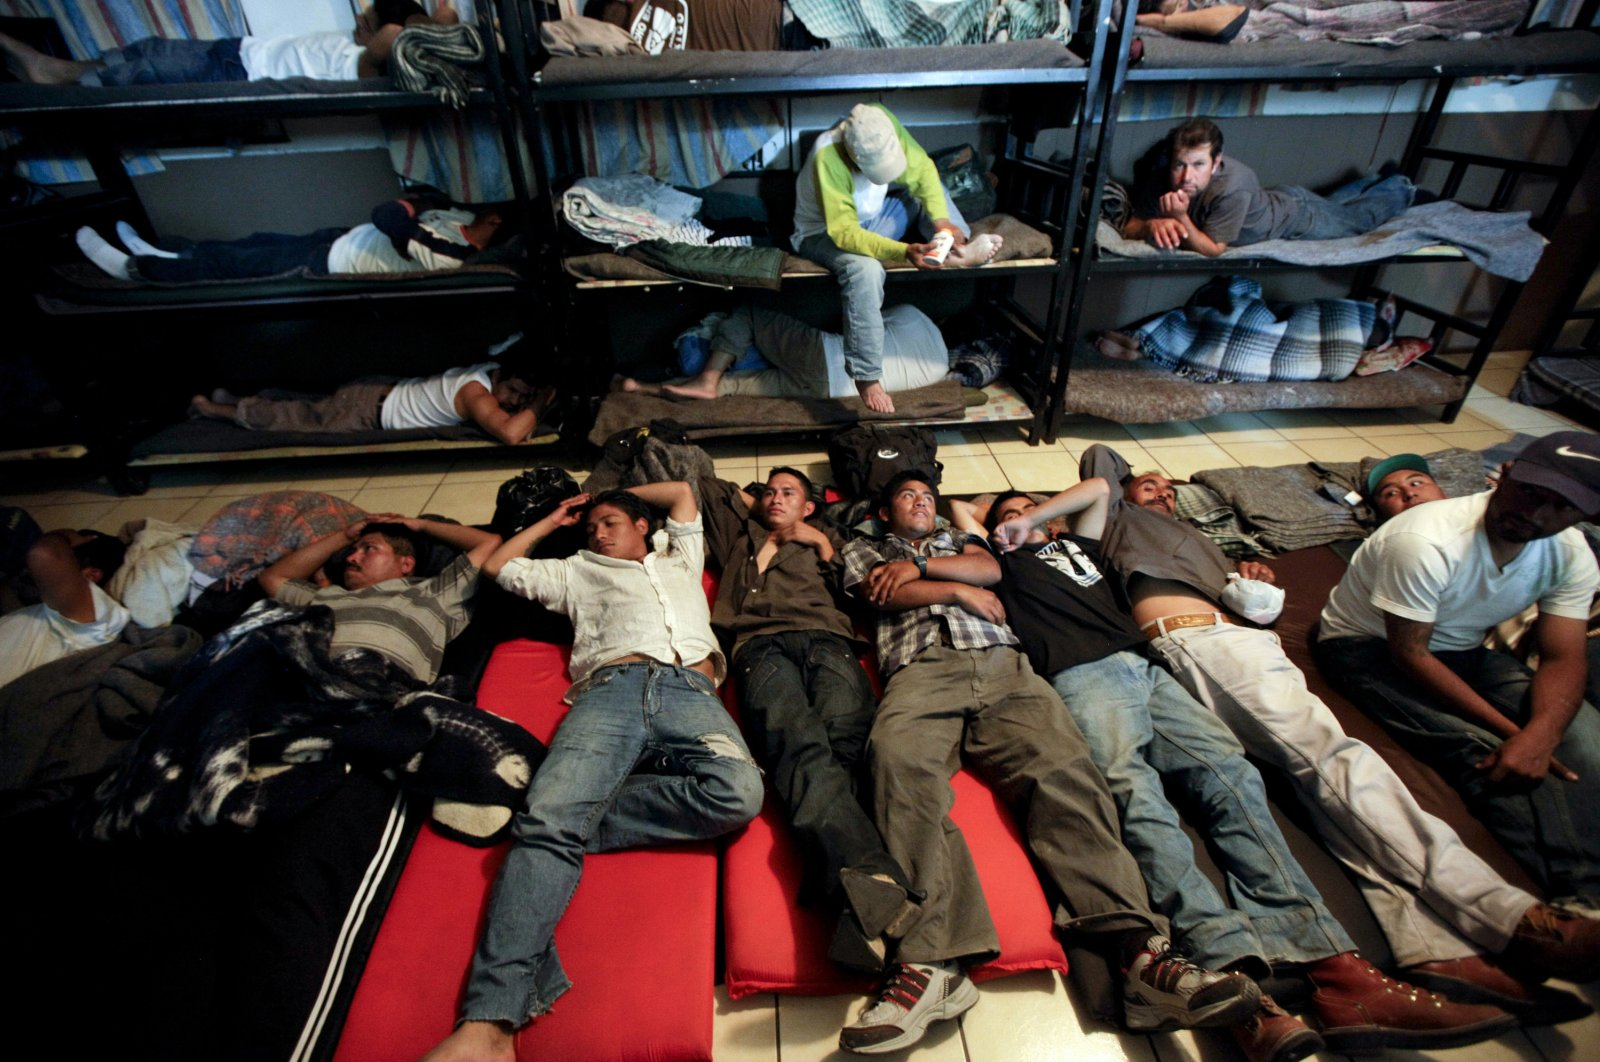 Men sleep in a crowded shelter for migrants deported from the United States, in the border city of Nogales, Mexico, April 28, 2010. (AP Photo)